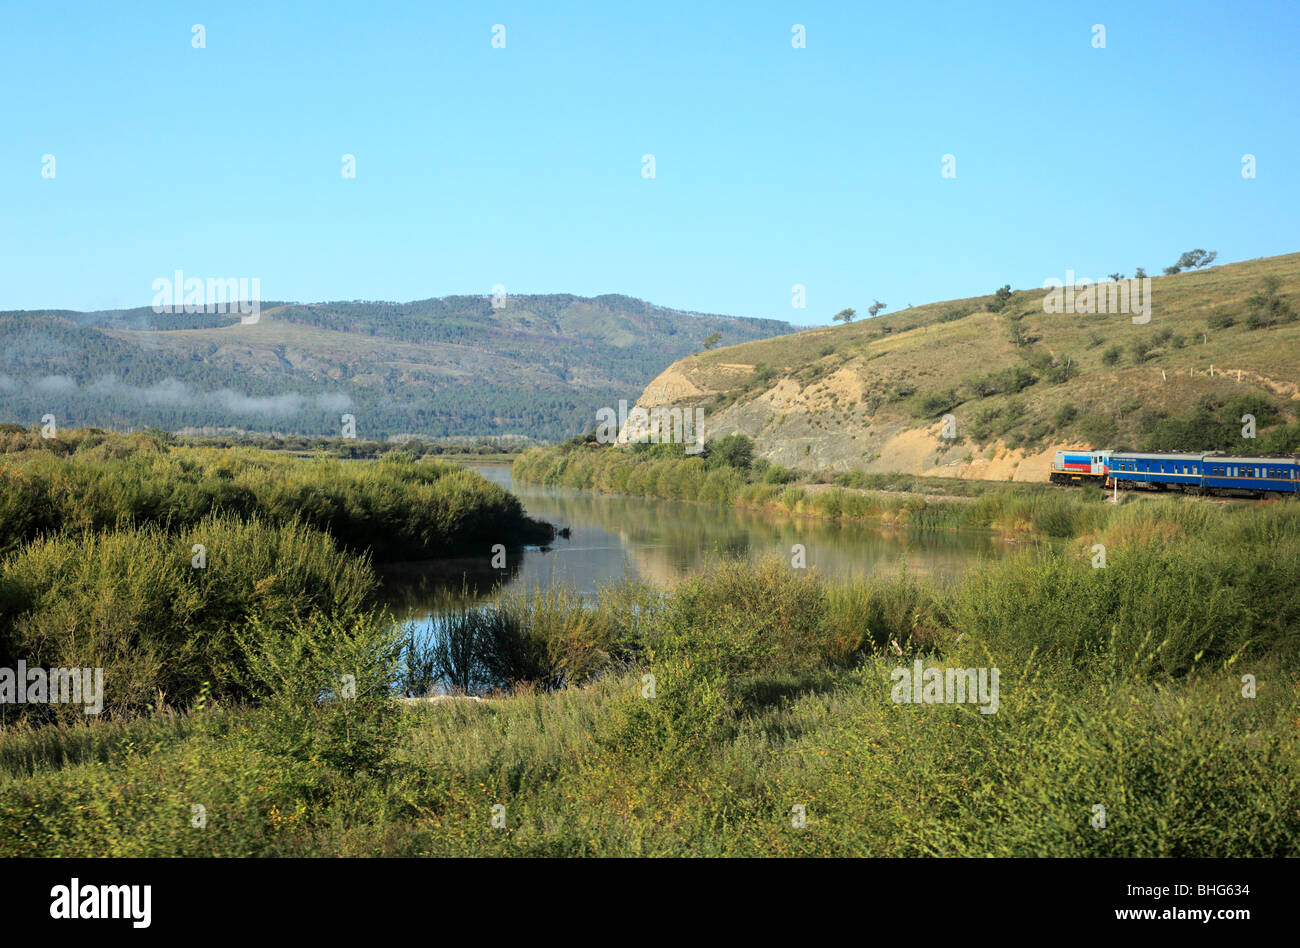 Landscape and trans-siberian express traveling towards mongolia - Stock Image